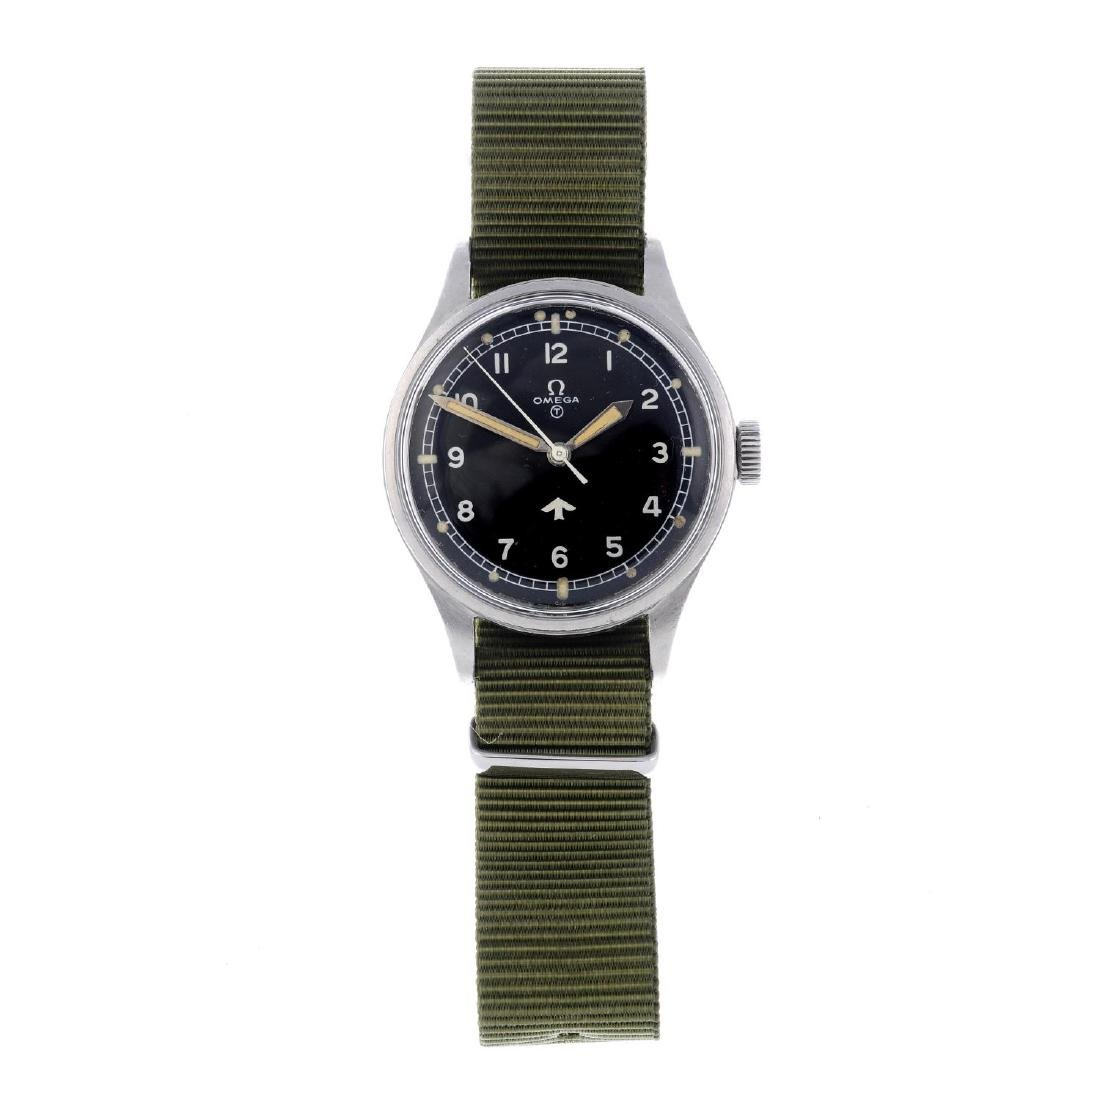 OMEGA - a gentleman's military issue wrist watch.